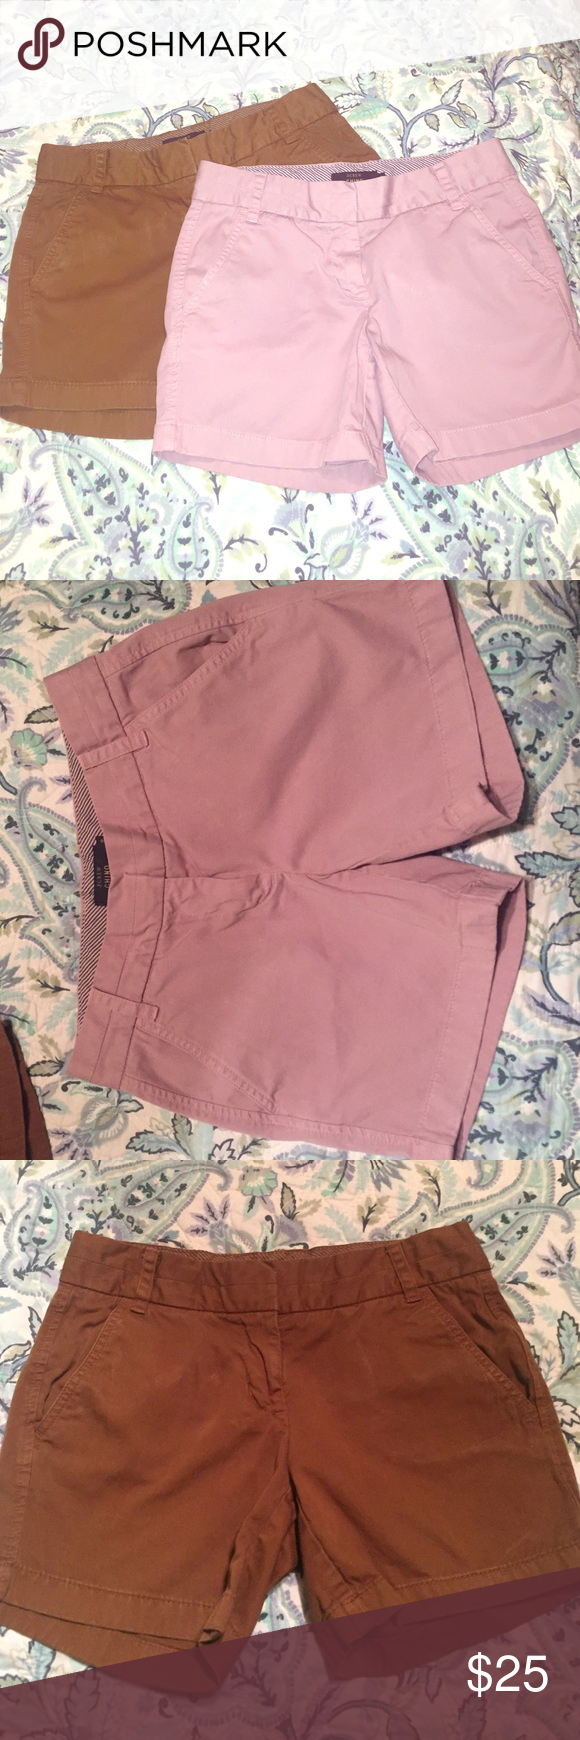 "J.Crew Chino Shorts Bundle! J. Crew 5"" chino shorts. Brand new condition. $15 for 1 pair, $25 for 2. J. Crew Shorts"